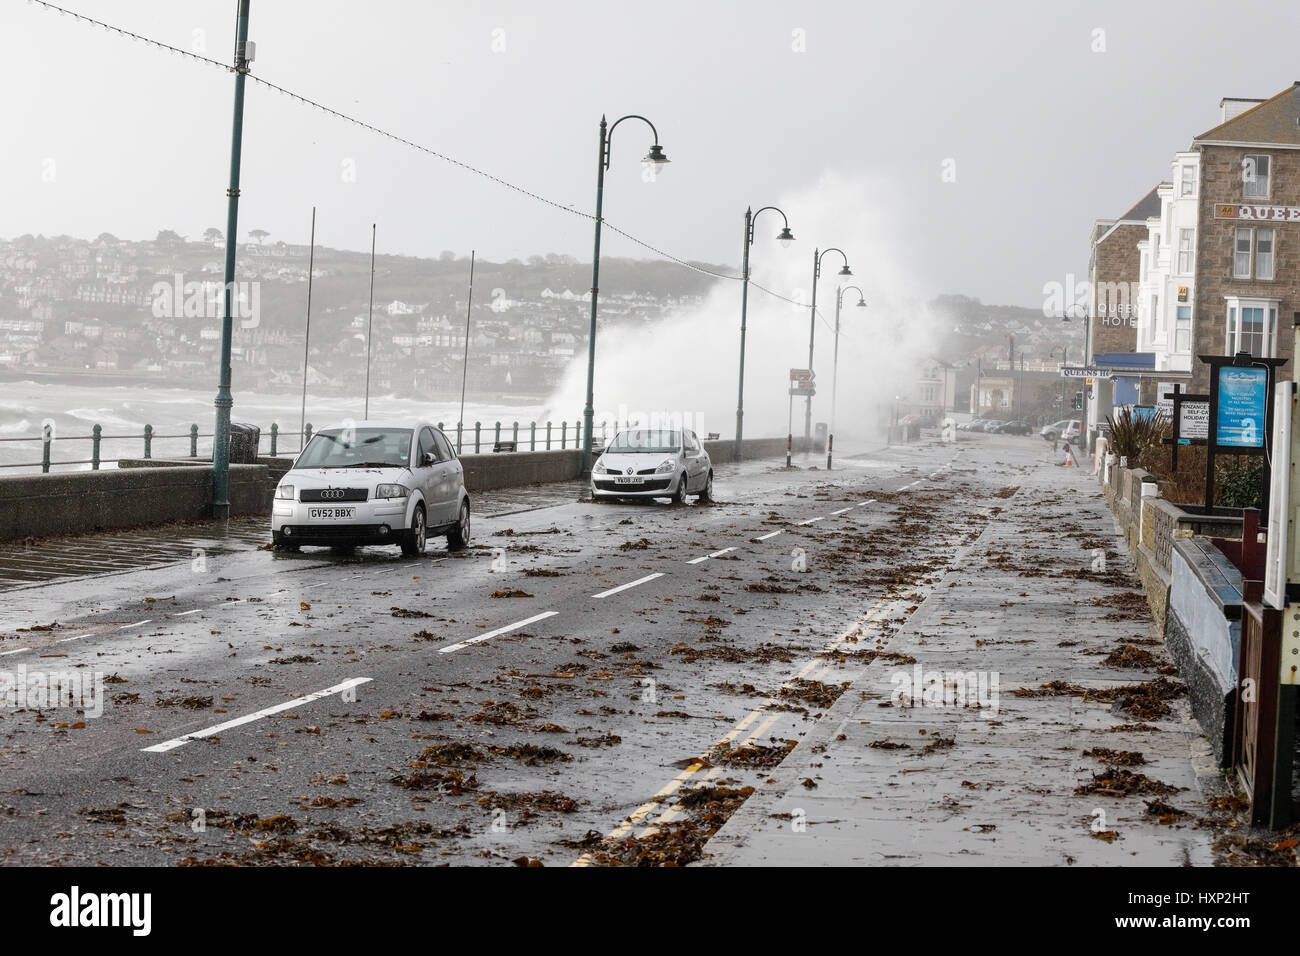 waves breaking over the seafront in Penzance during a winter storm - Stock Image